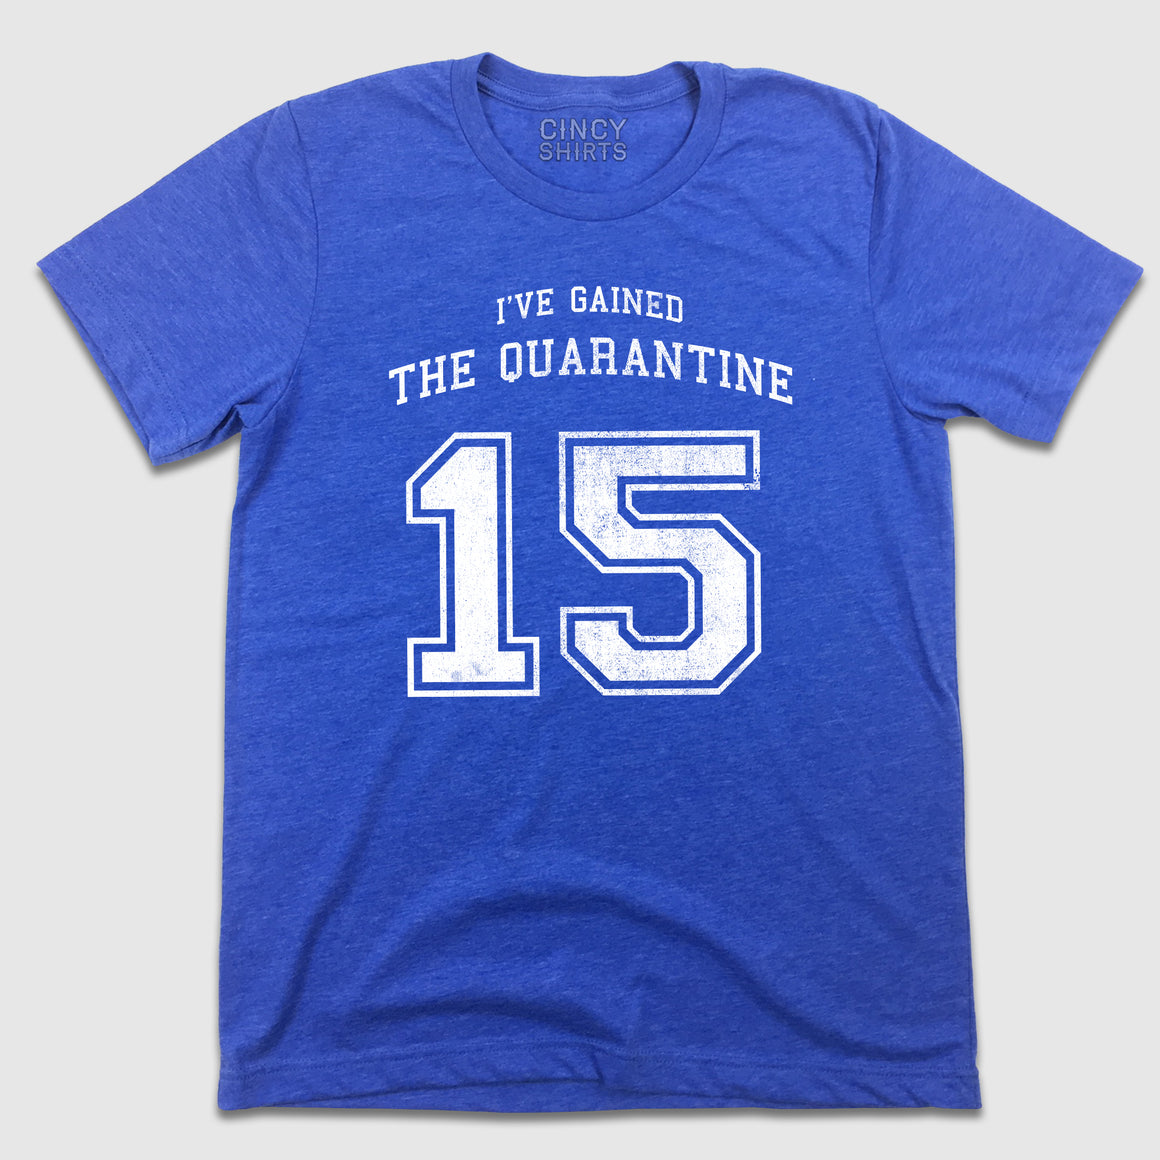 I've Gained The Quarantine 15 - Cincy Shirts